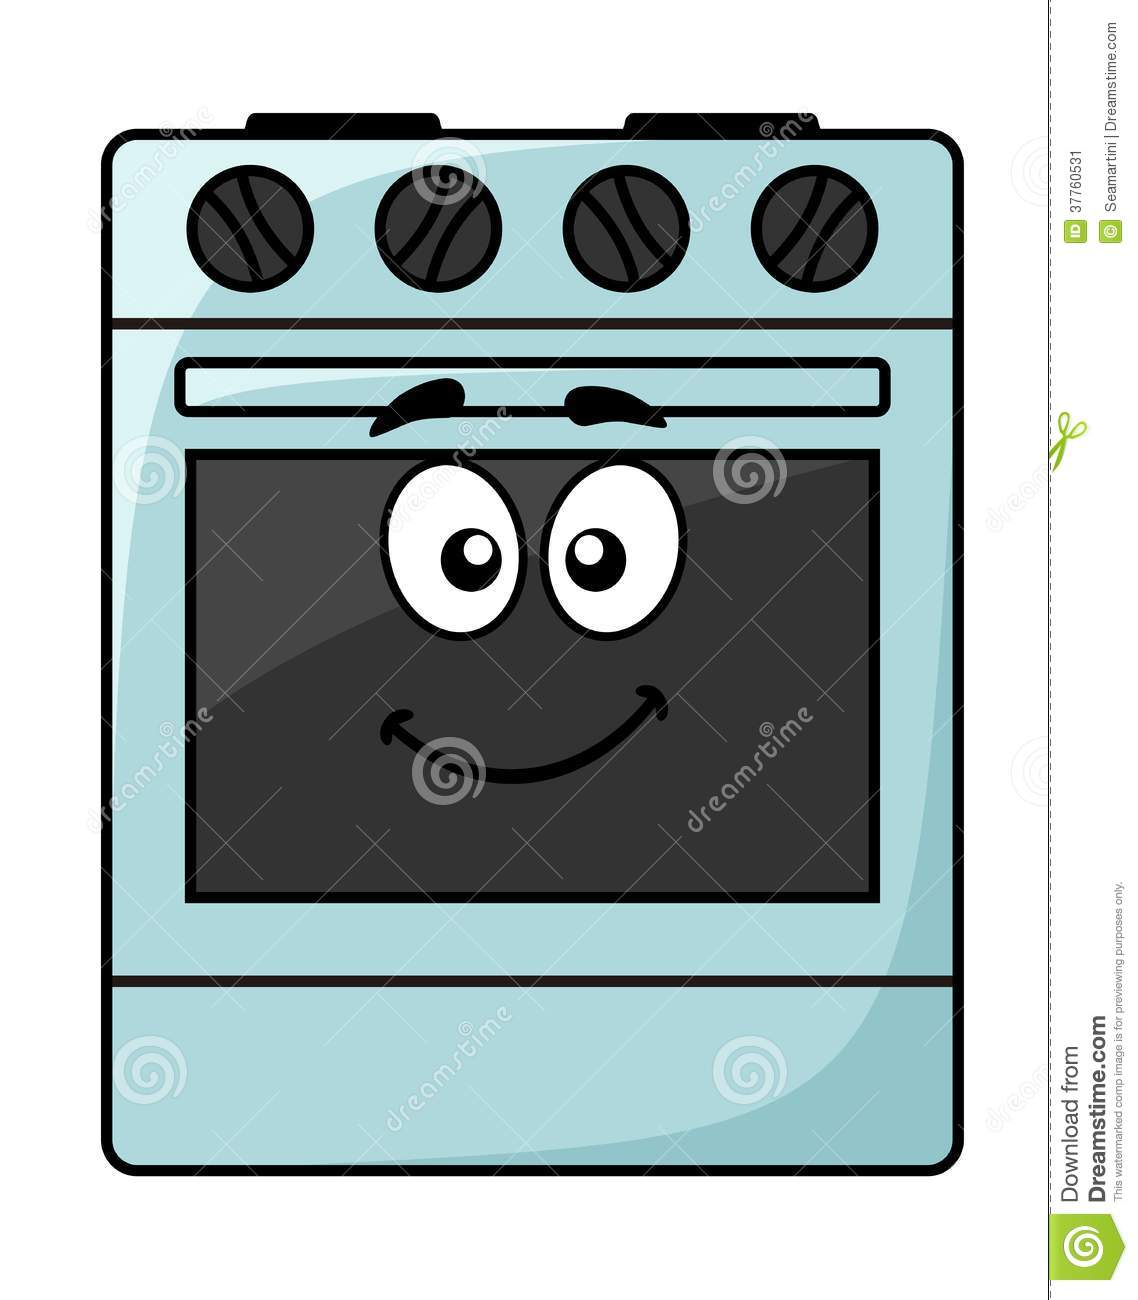 Cartoon kitchen appliance - a happy smiling freestanding electrical ...